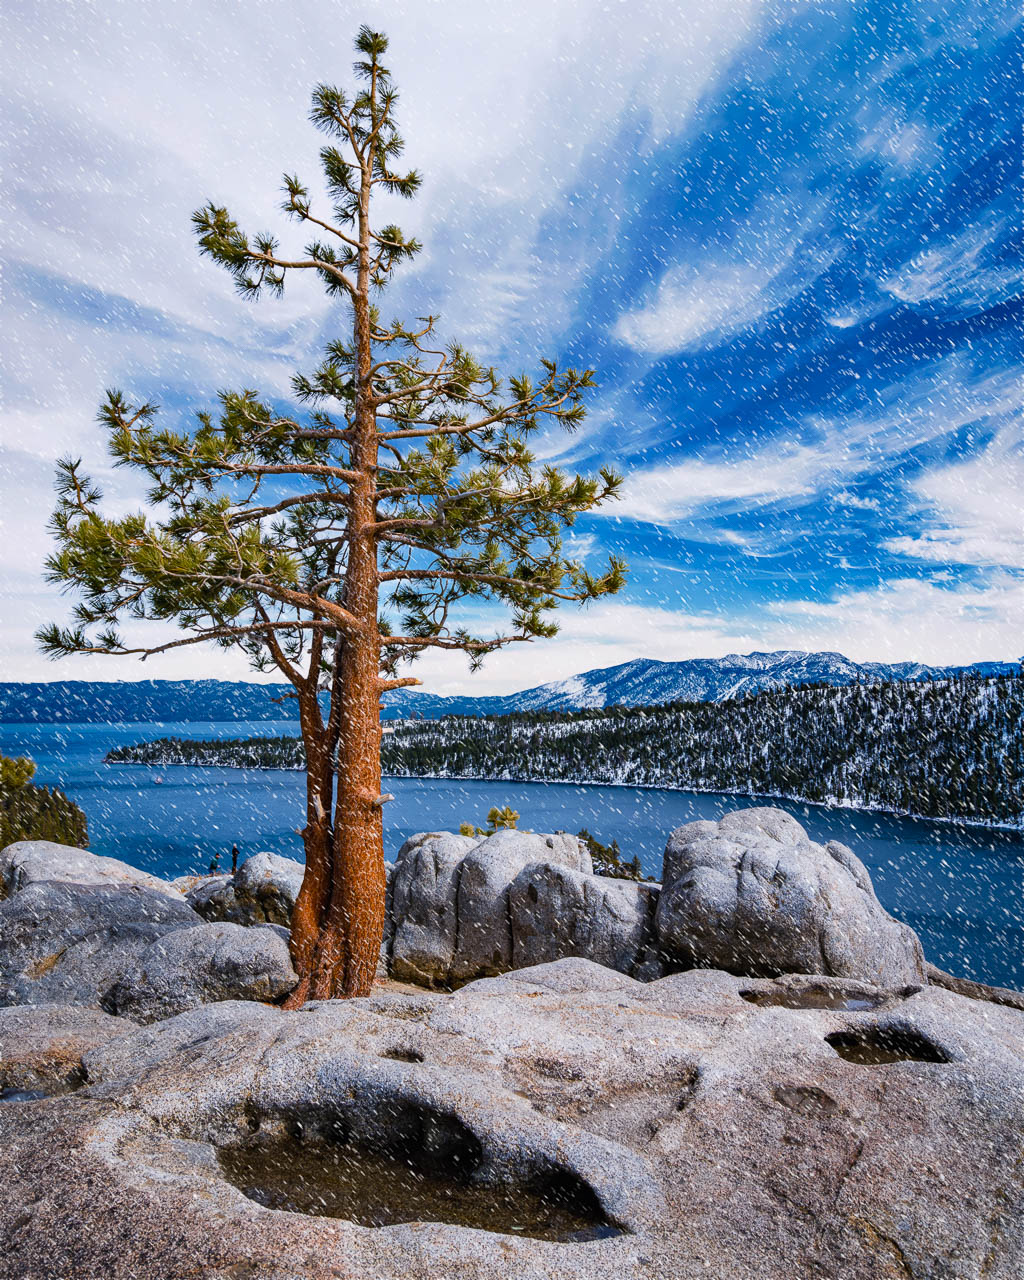 Emerald bay south lake tahoe california road trip